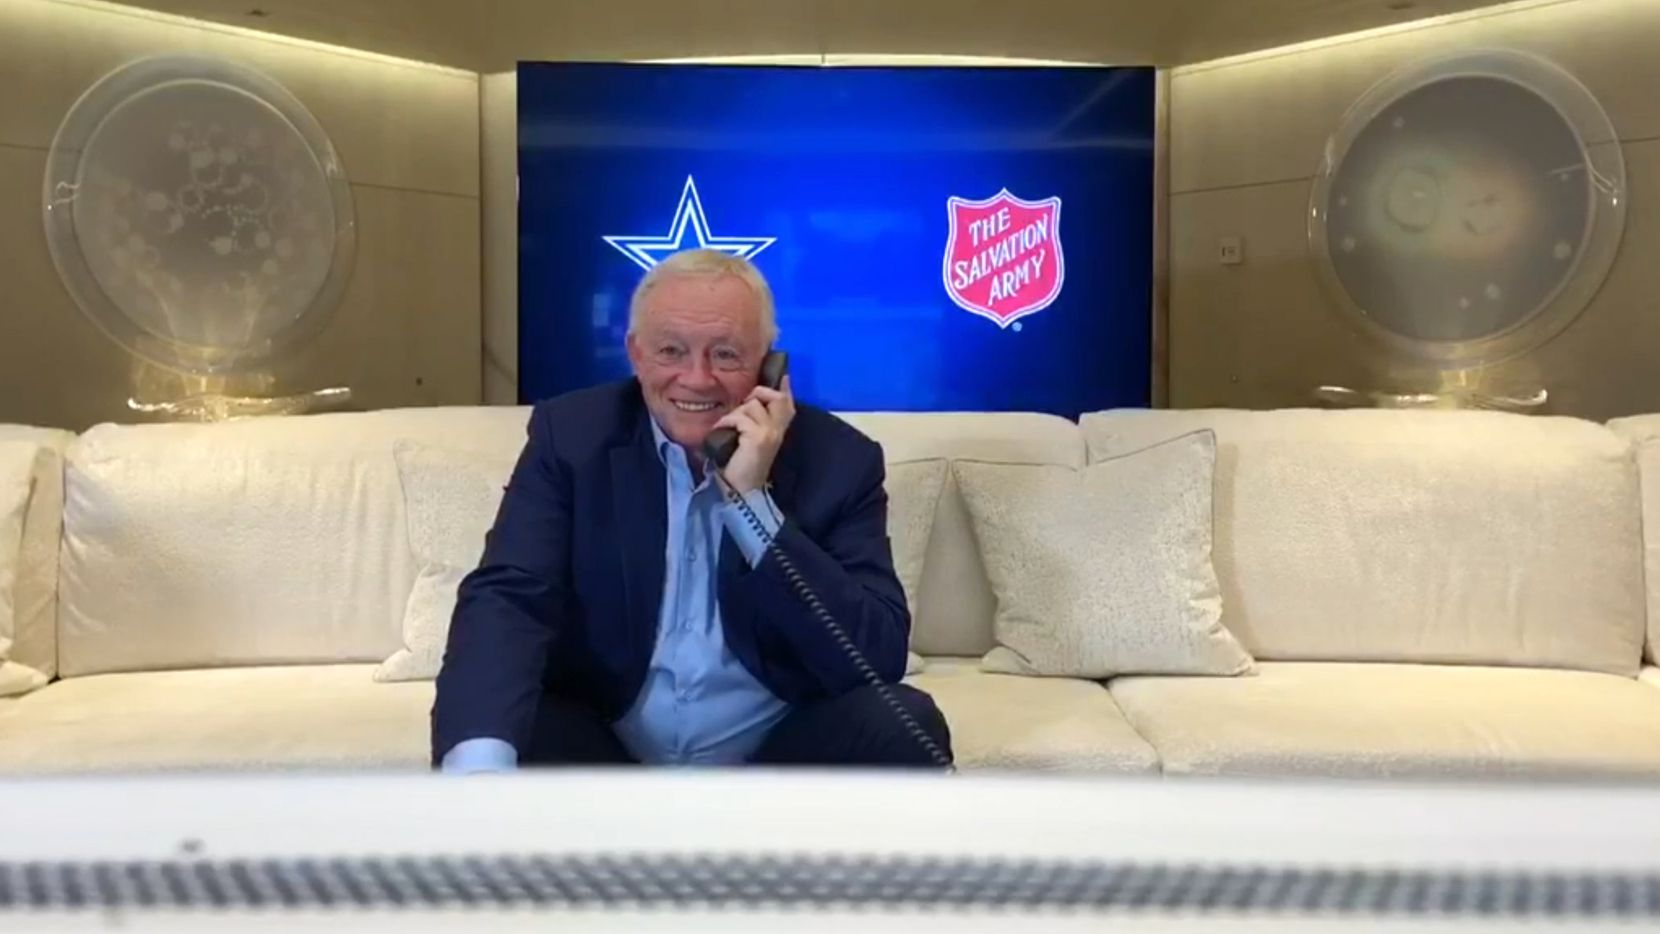 Screen capture of Dallas Cowboys owner and general manager Jerry Jones as he talks on the phone as the Cowboys make CeeDee Lamb of Oklahoma the 17th pick in the first round of the NFL Draft on Thursday, April 23, 2020. Due to the coronavirus pandemic the NFL Draft was held virtually.